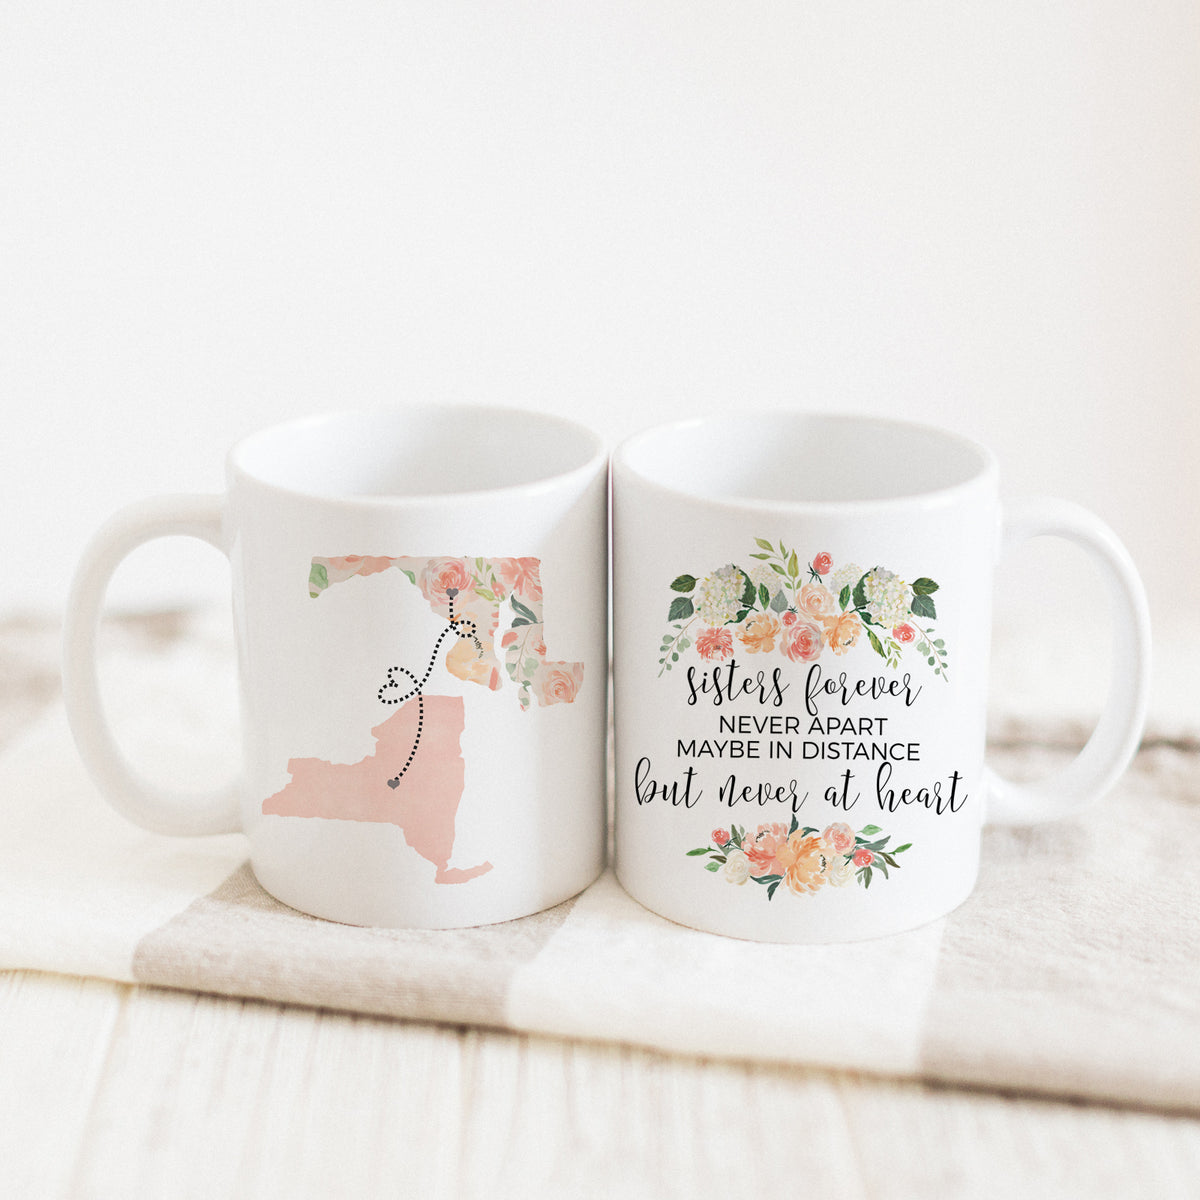 Sisters Forever Never Apart Maybe In Distance But Never At Heart Mug